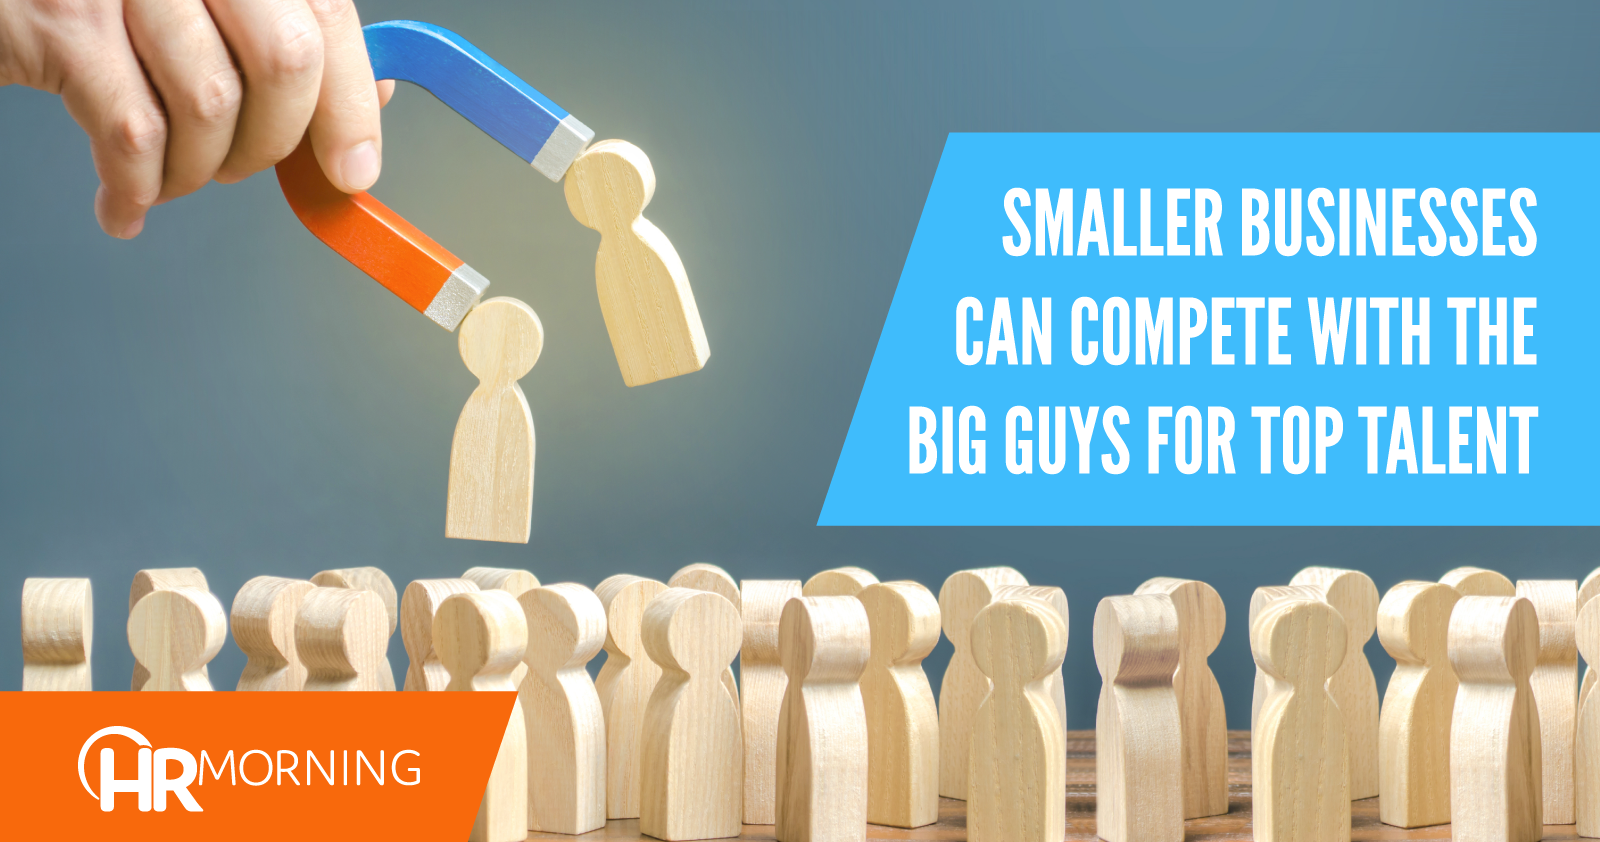 Smaller Businesses Can Compete With The Big Guys For Top Talent